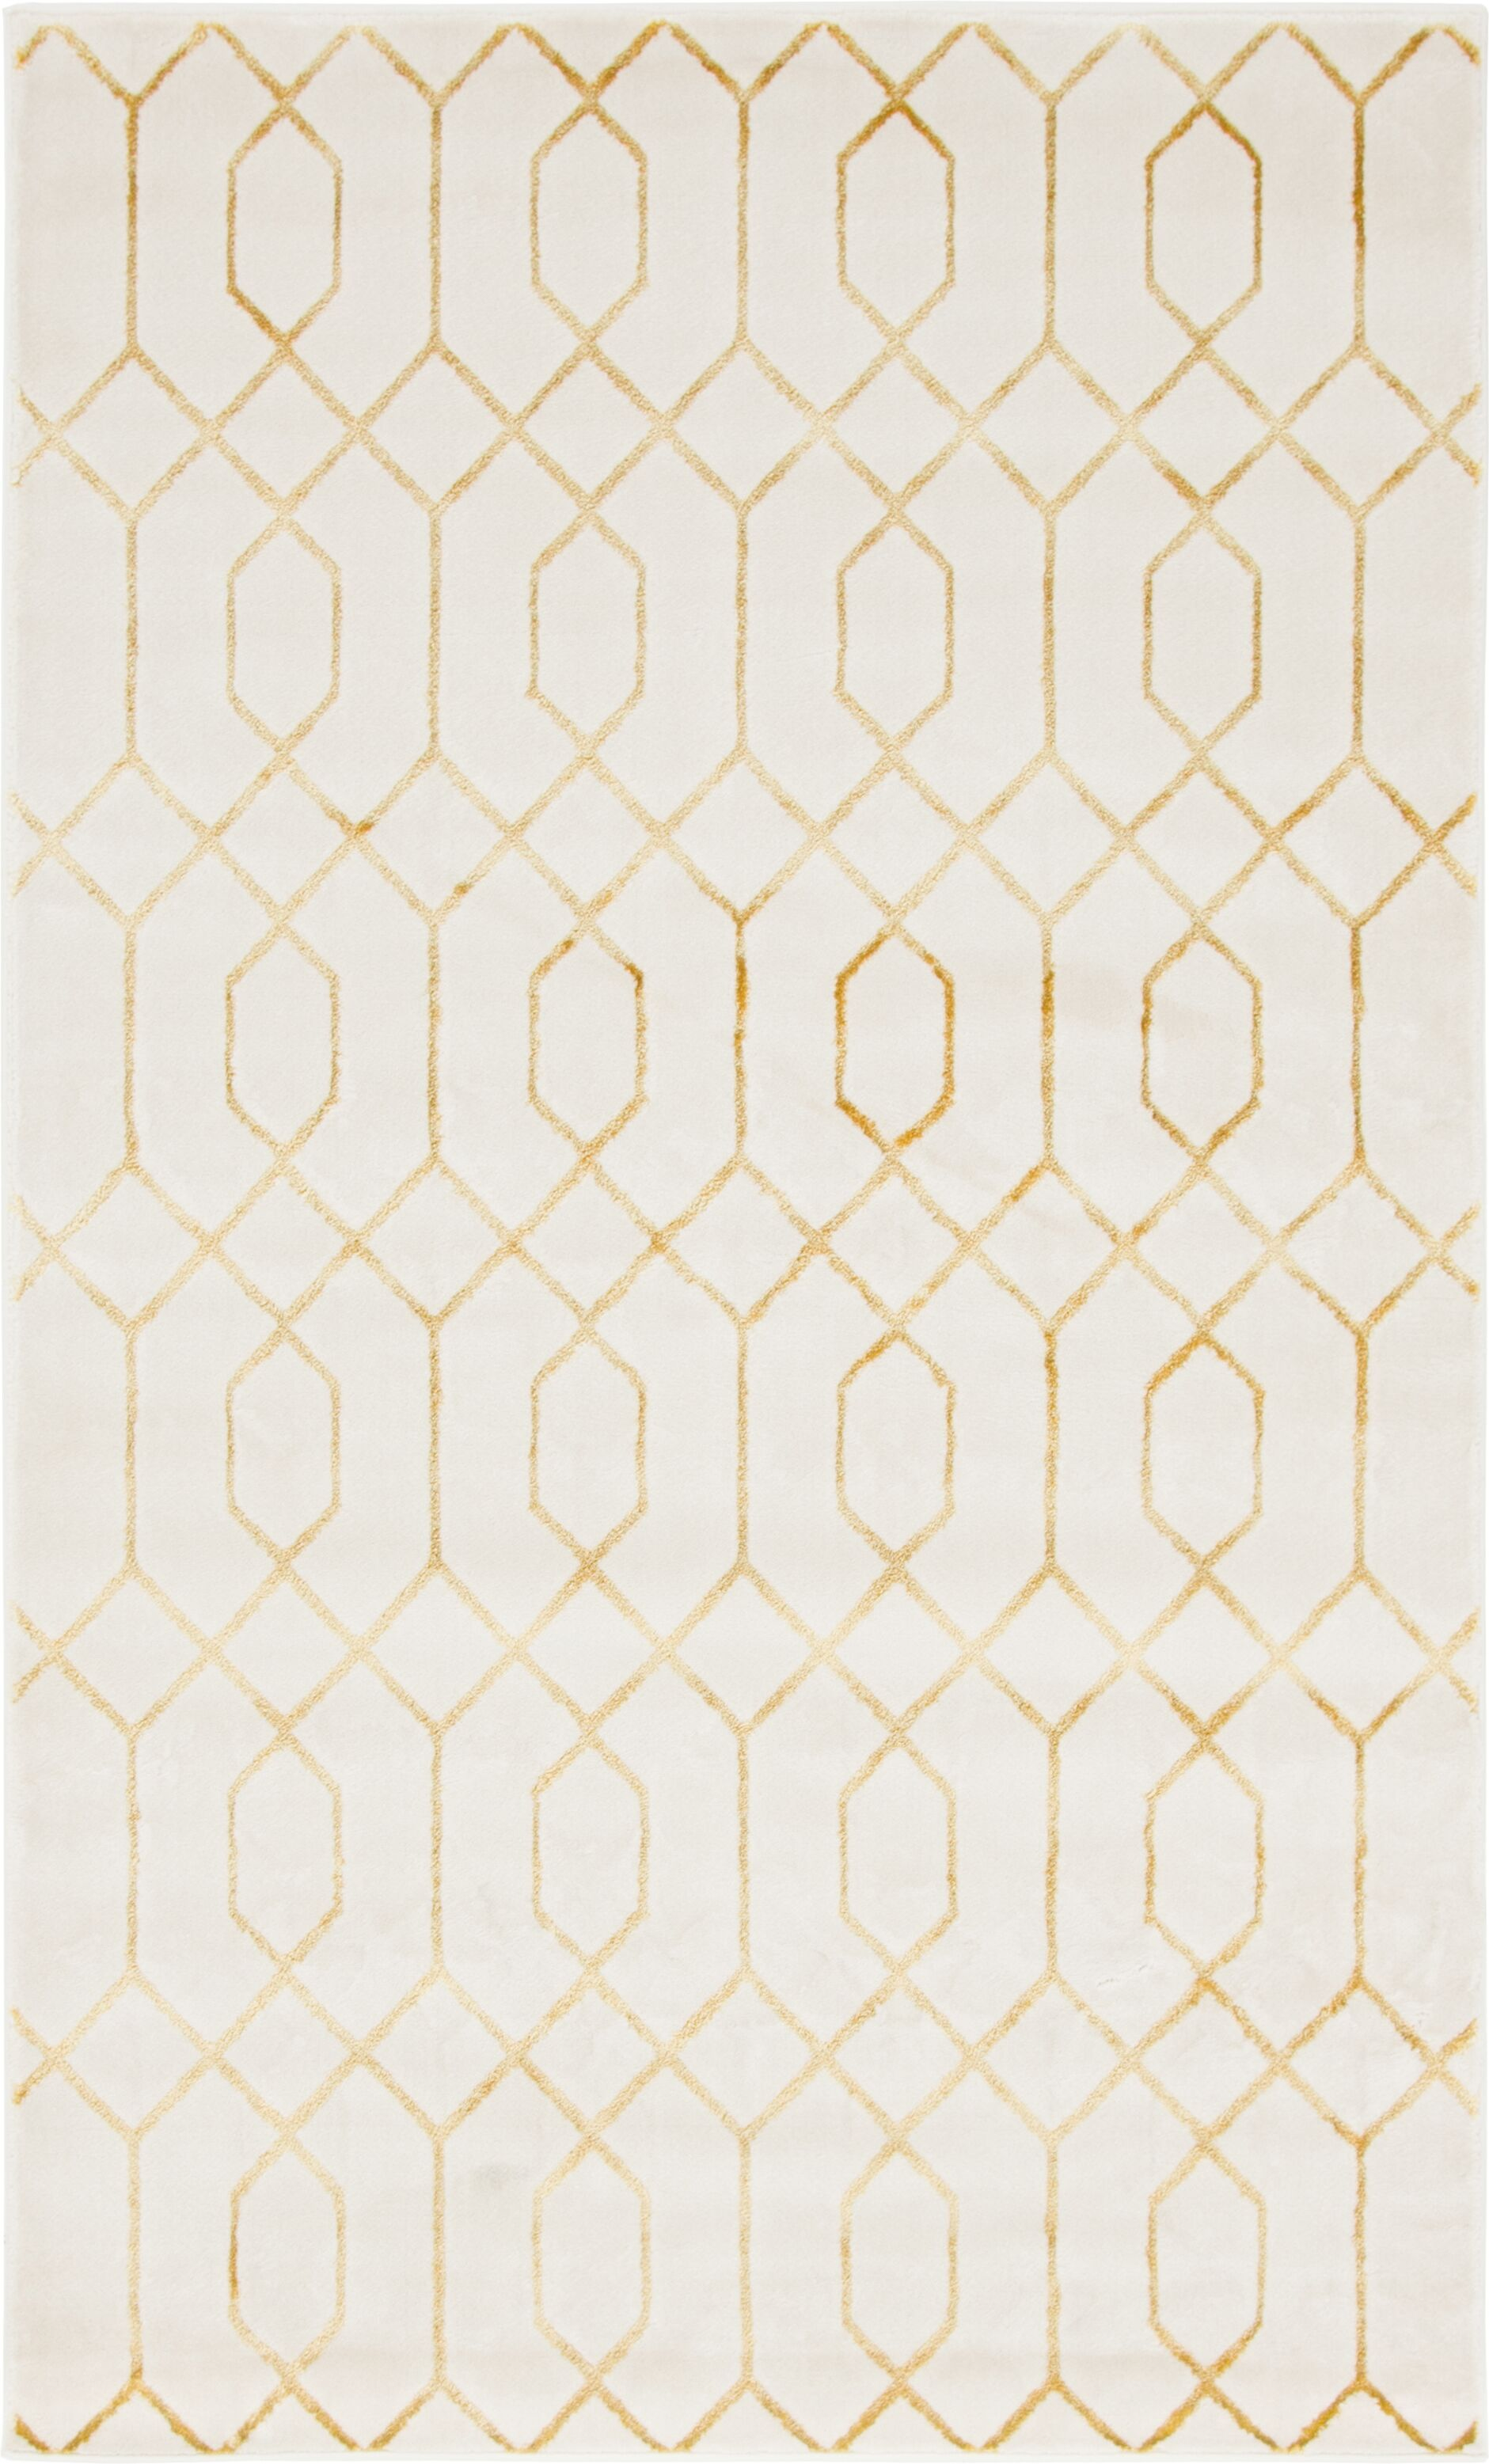 Glam Beige Area Rug Rug Size: Rectangle 5' x 8'